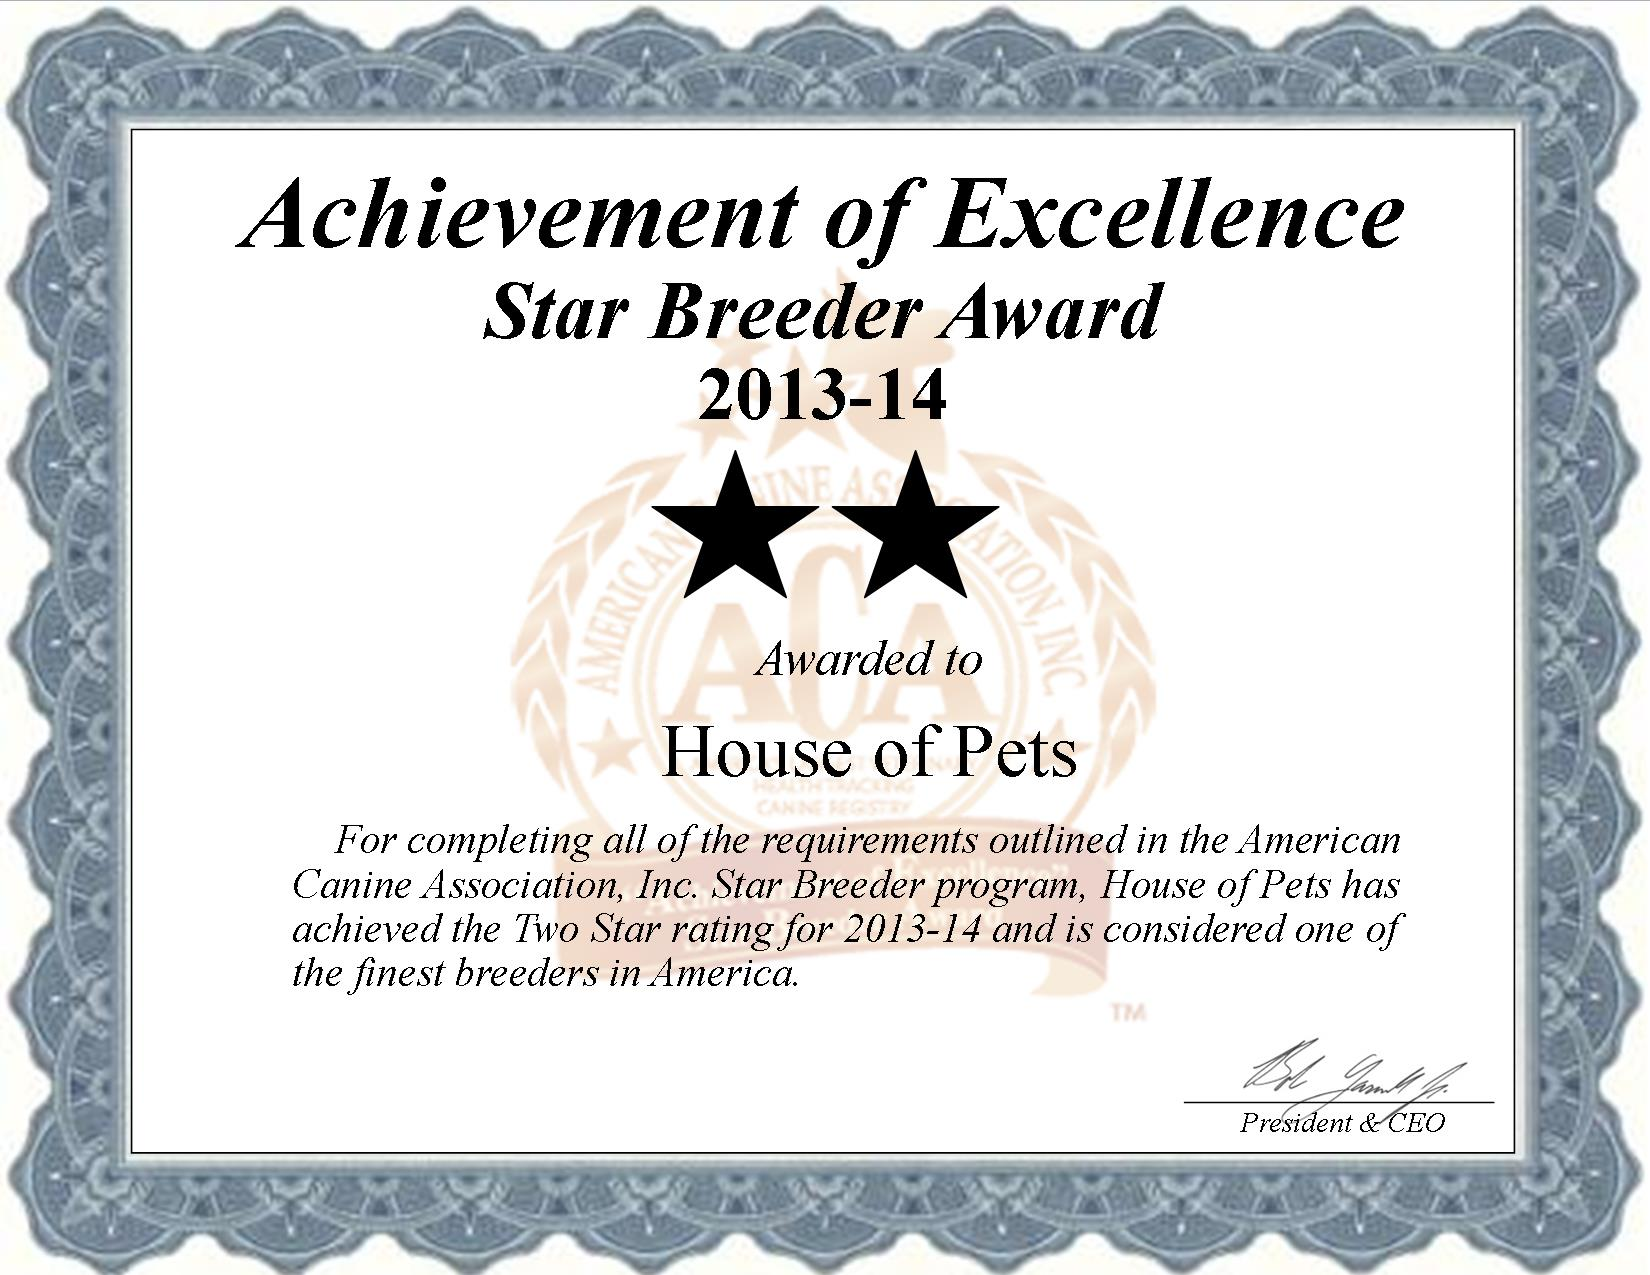 House of, Pets, House of Pets, Pets Kennel, breeder, star breeder, aca, star breeder, 5 star, fresno, Ohio, oh, dog, puppy, puppies, dog breeder, dog breeders, Ohio breeder, House of Pets dog breeder